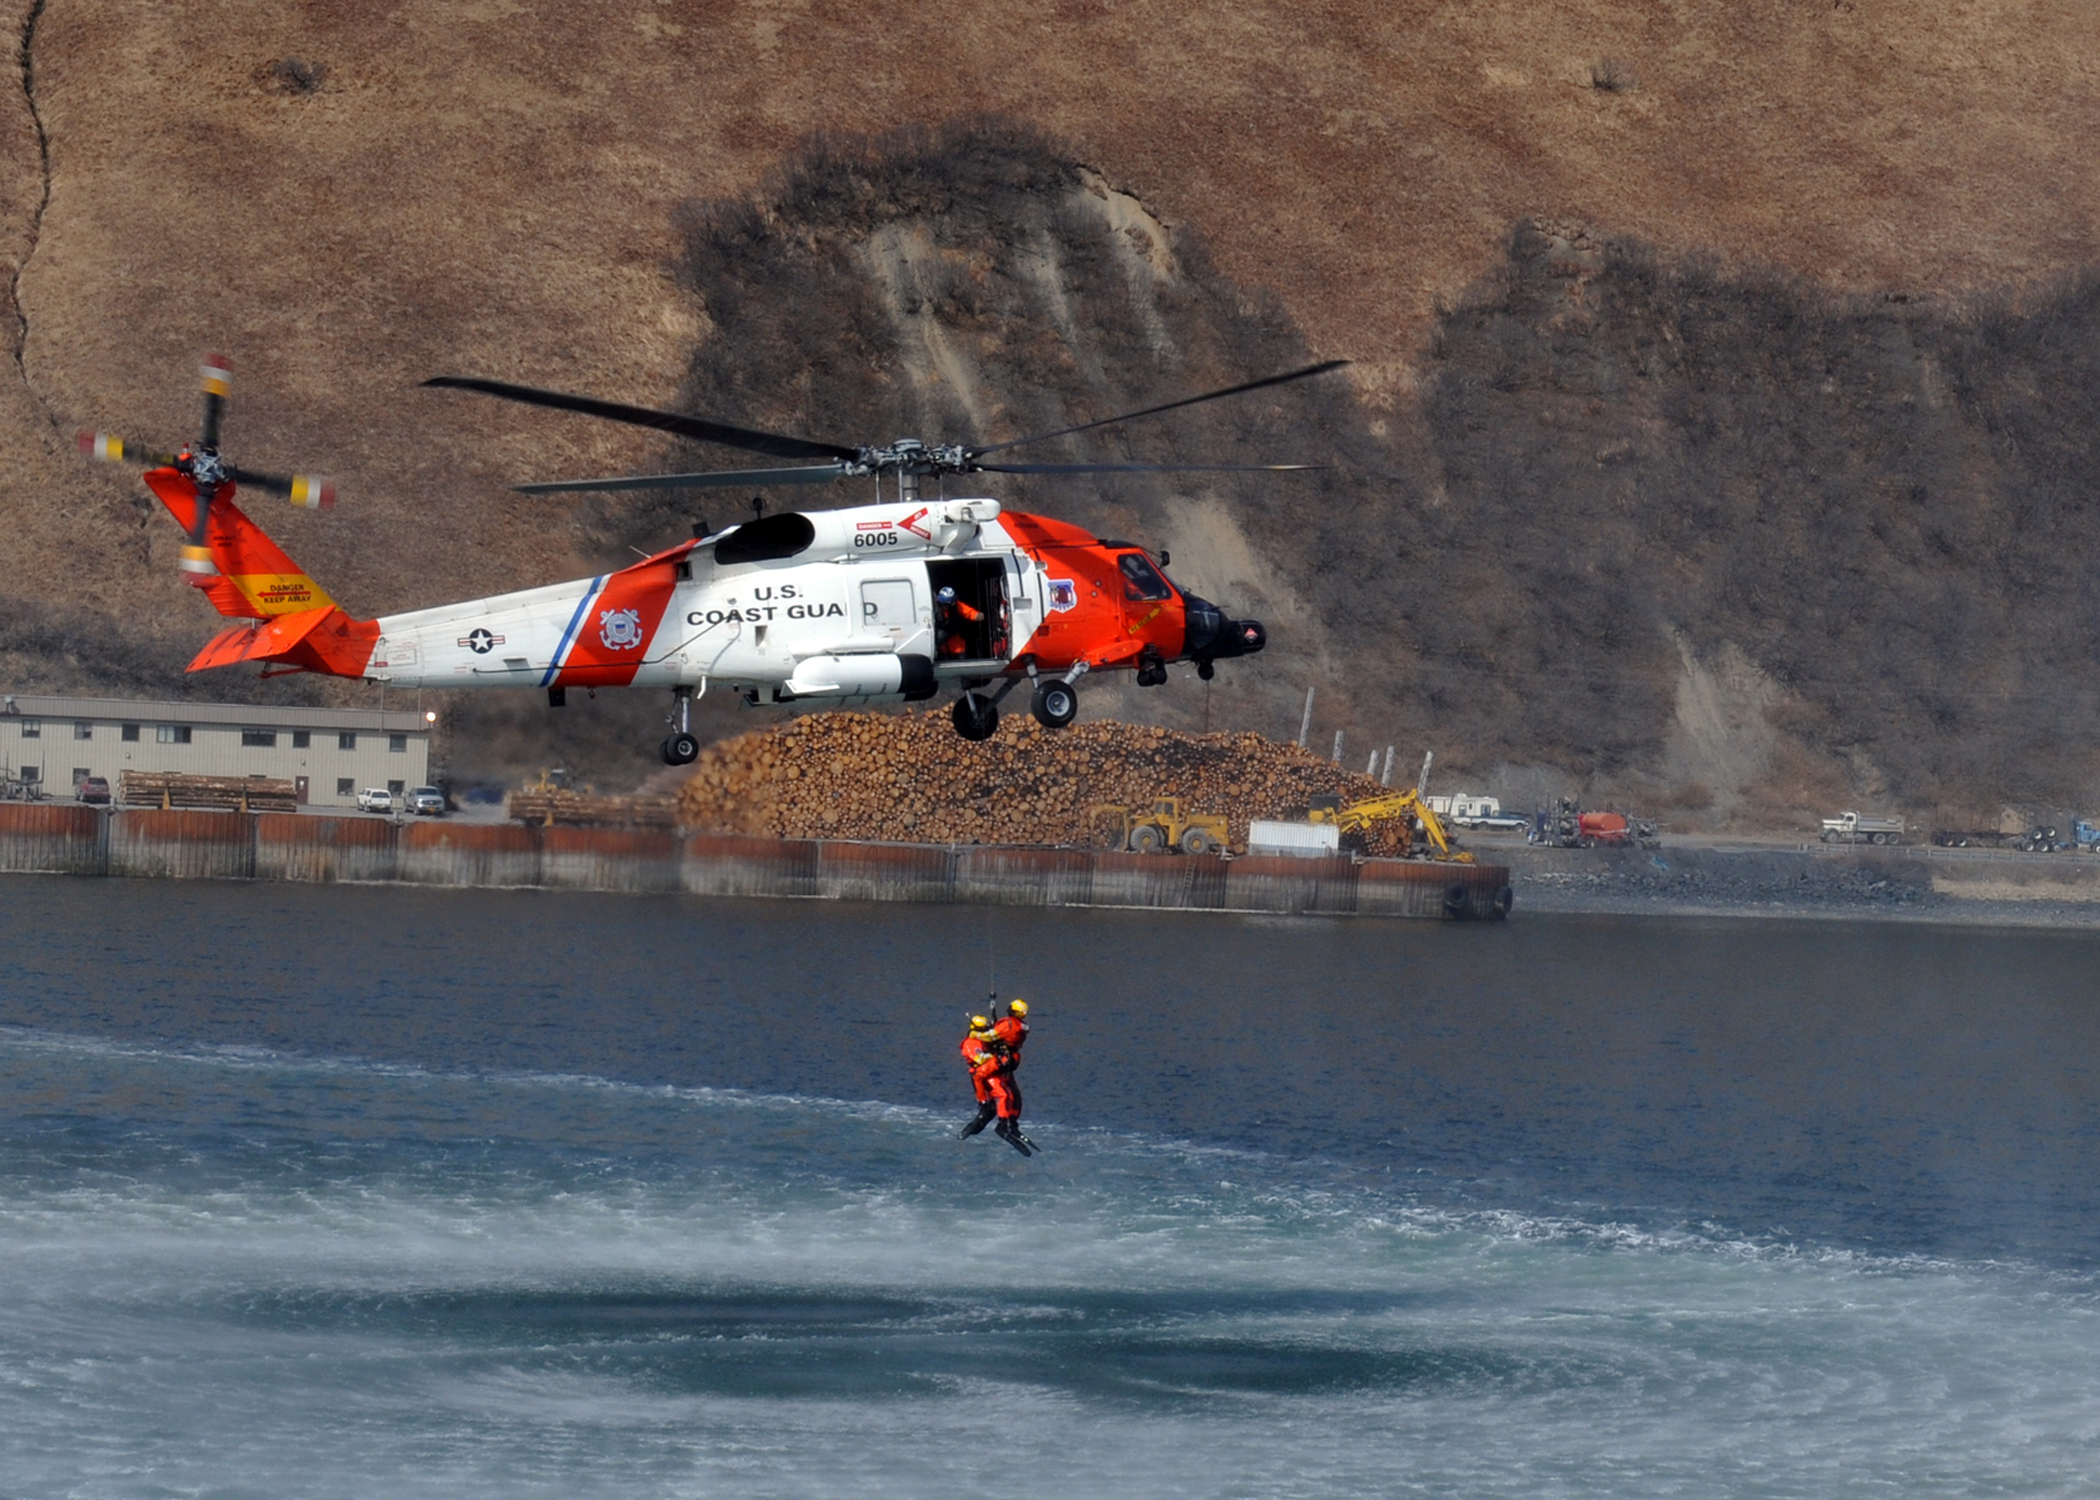 Uscg S Cold Bay Crews Conduct 5th Rescue In Two Weeks